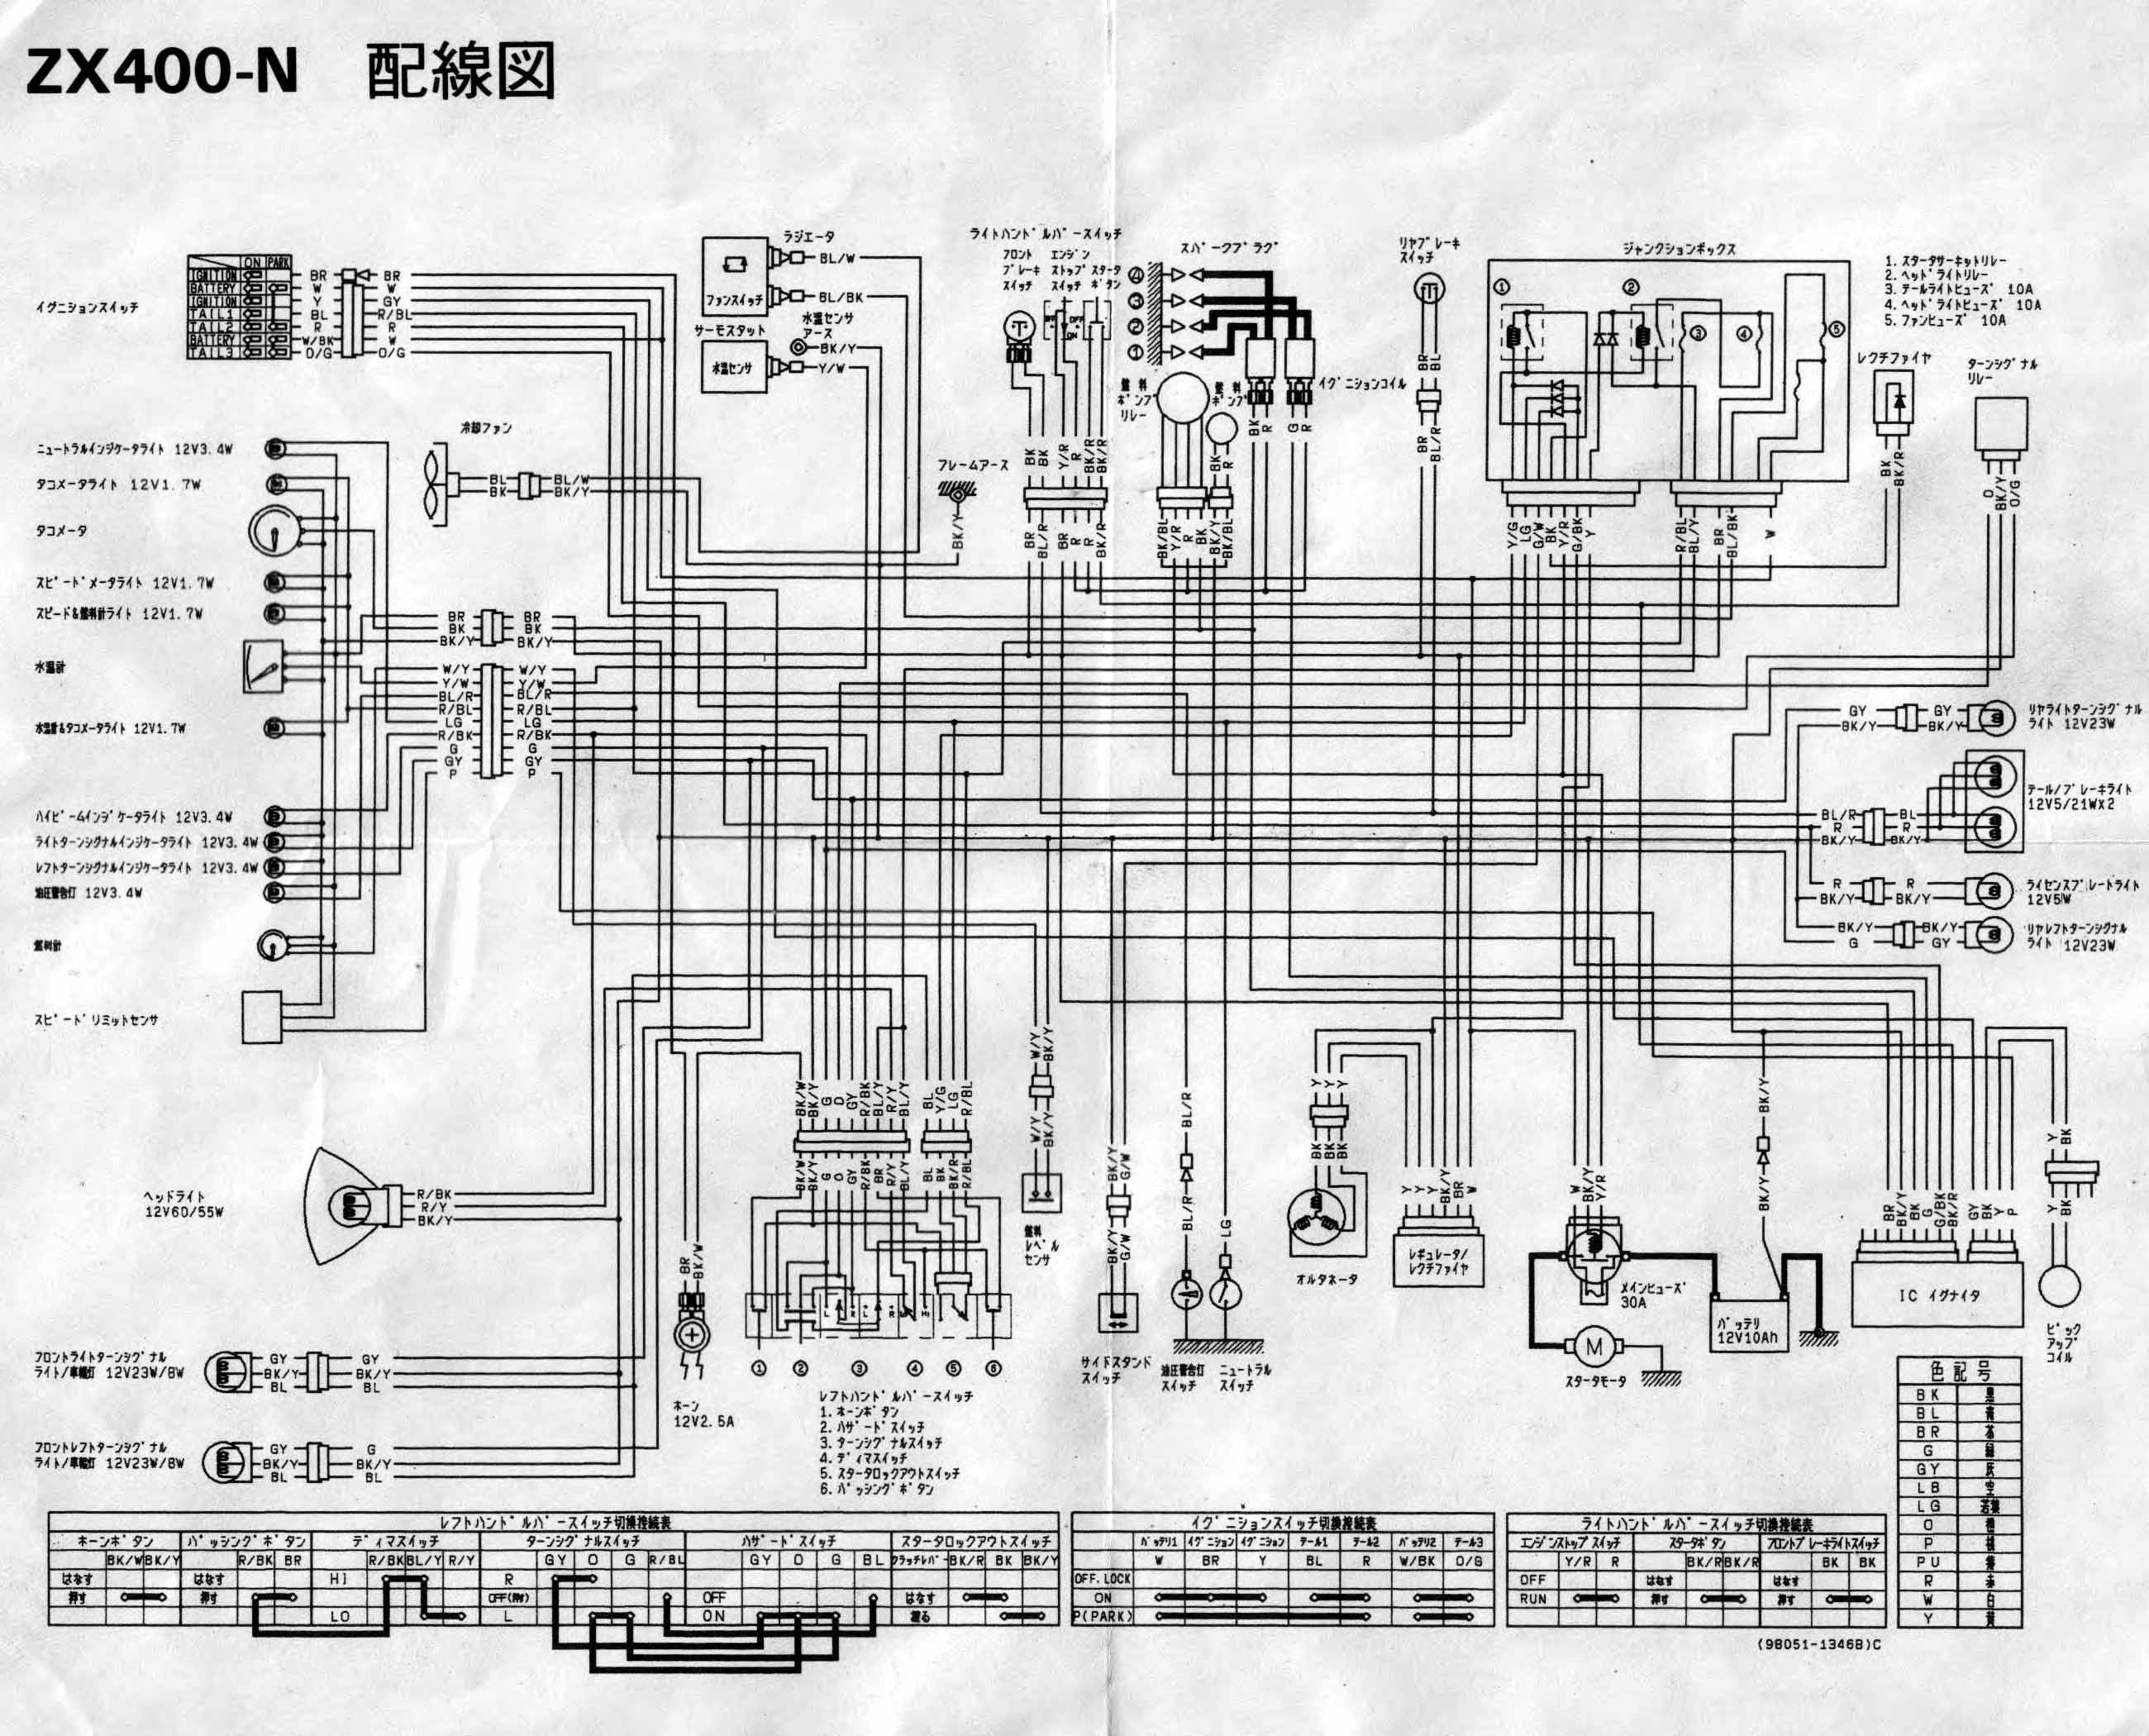 1995 Kawasaki Gpz 1100 Wiring Diagrams Artic Cat Jag Wiring Diagram For 1979 Contuor Nescafe Jeanjaures37 Fr